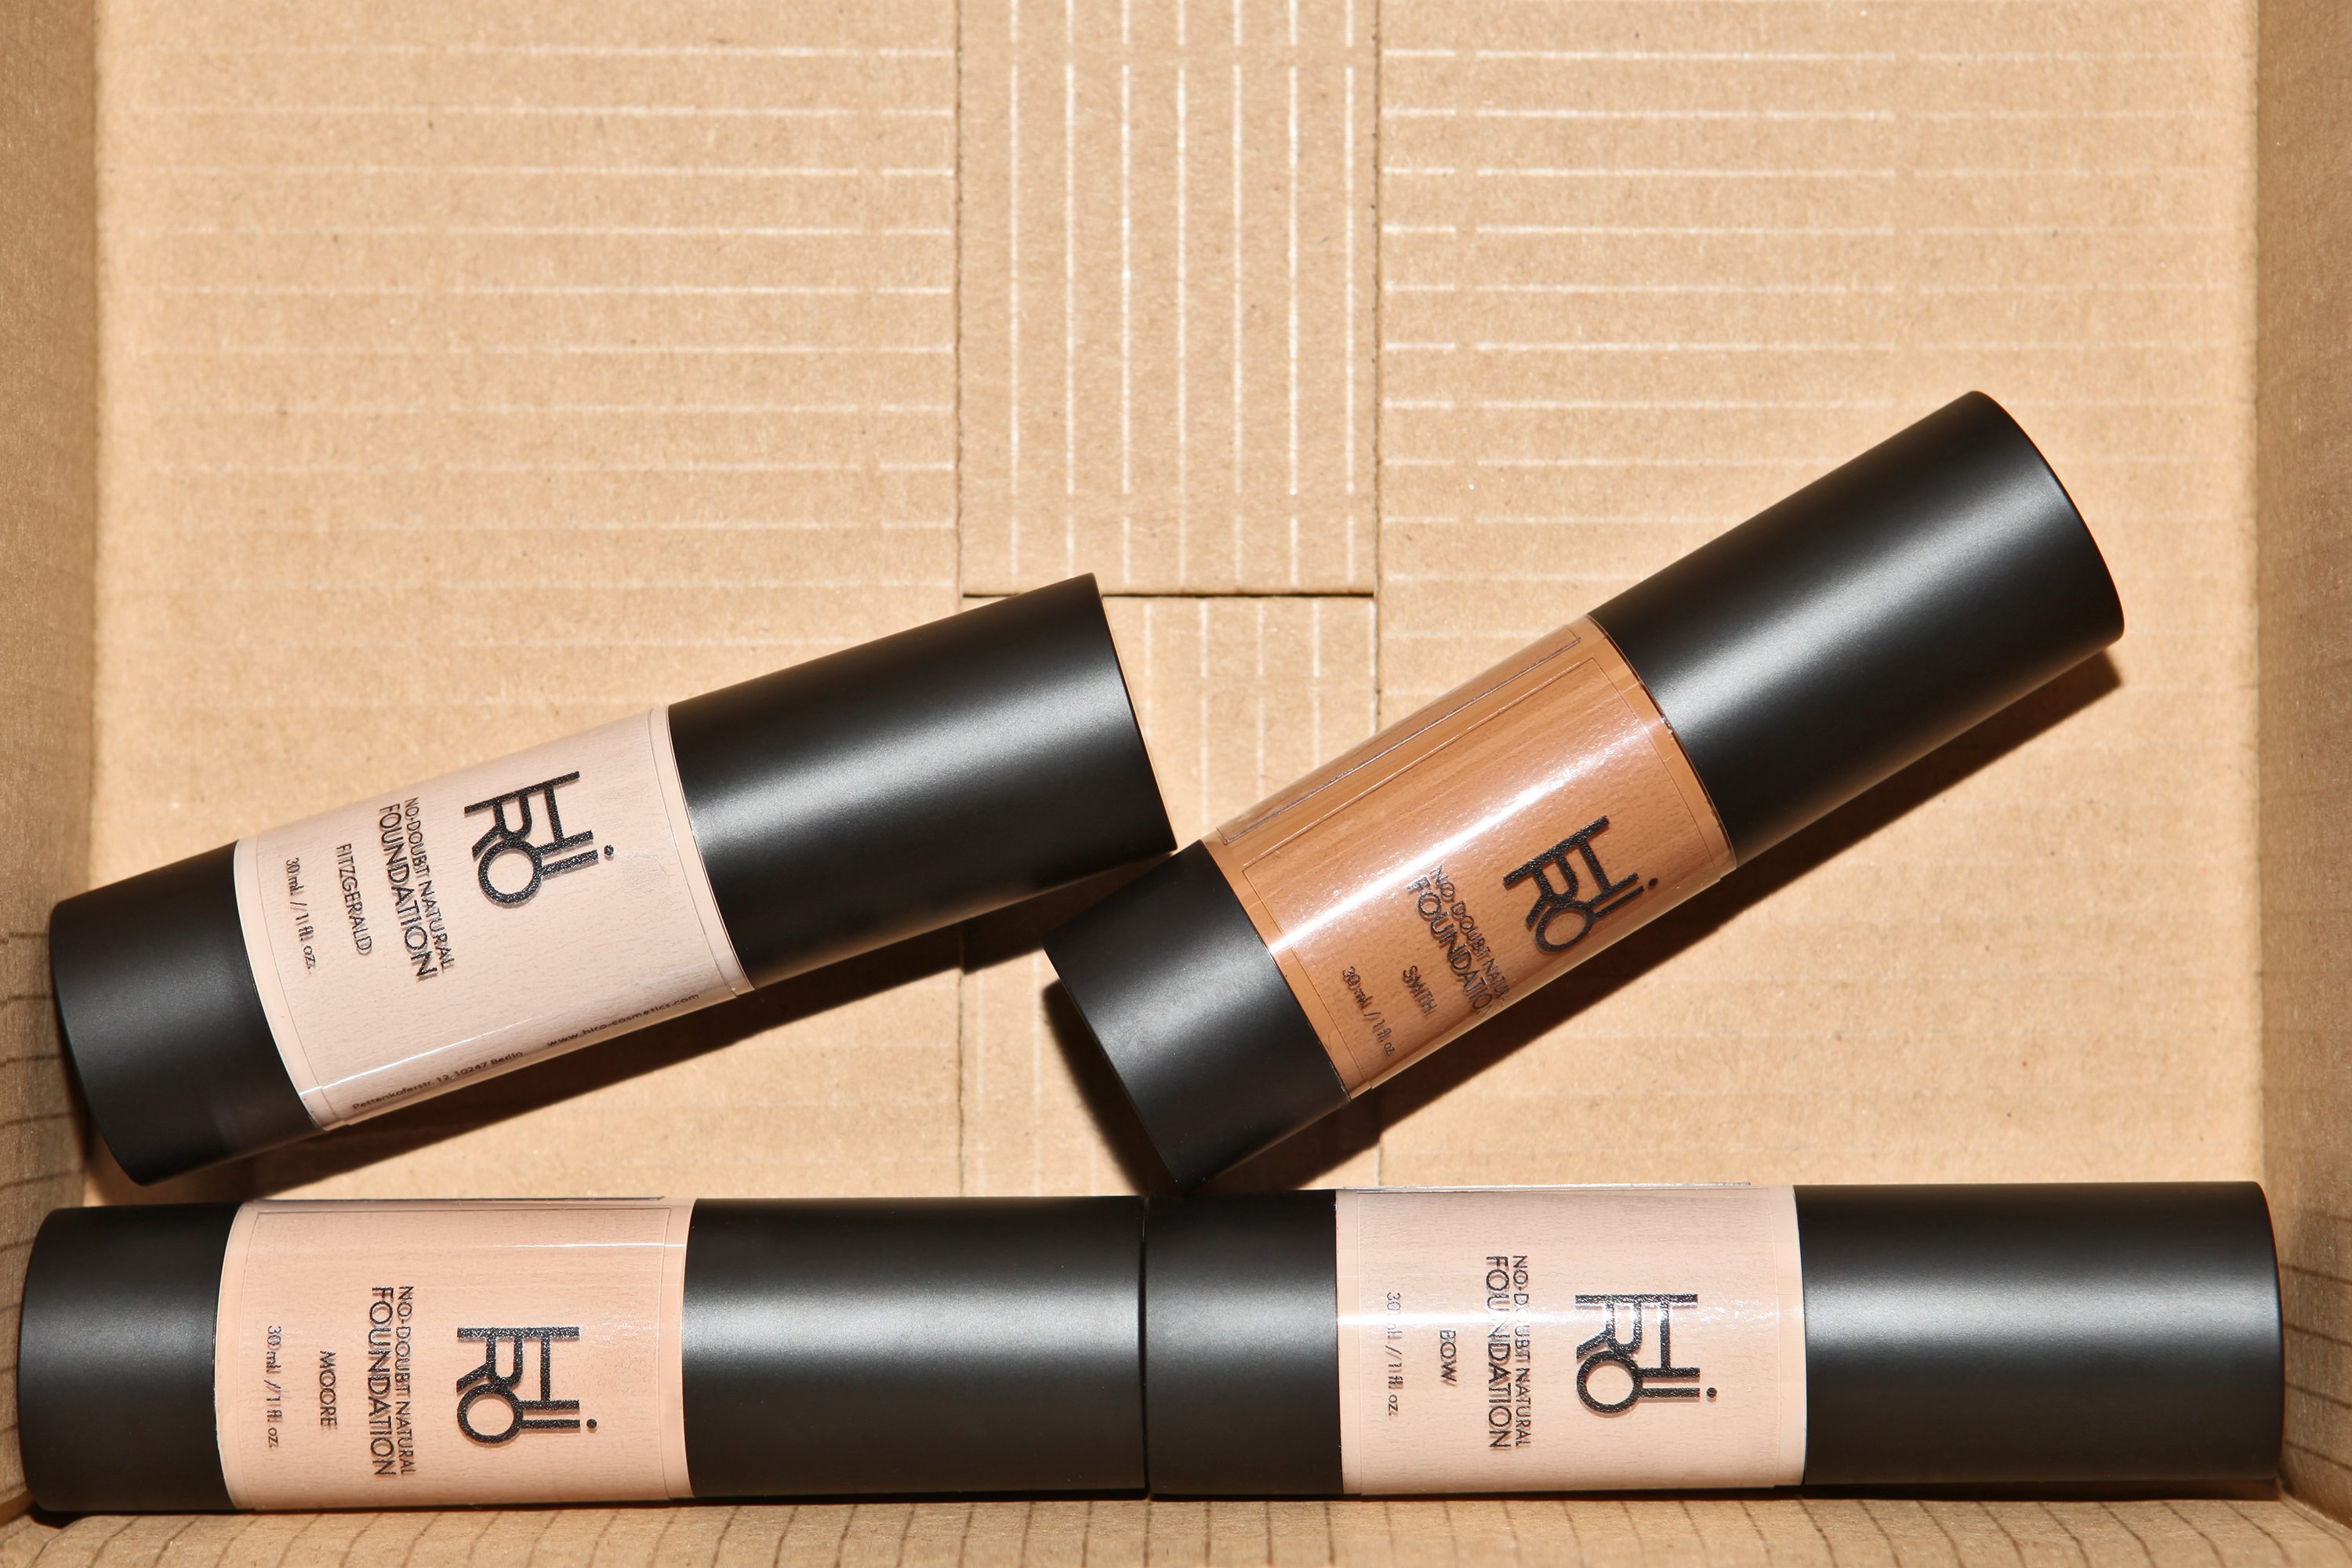 HIRO Vegan Organic Natural Foundation in carton